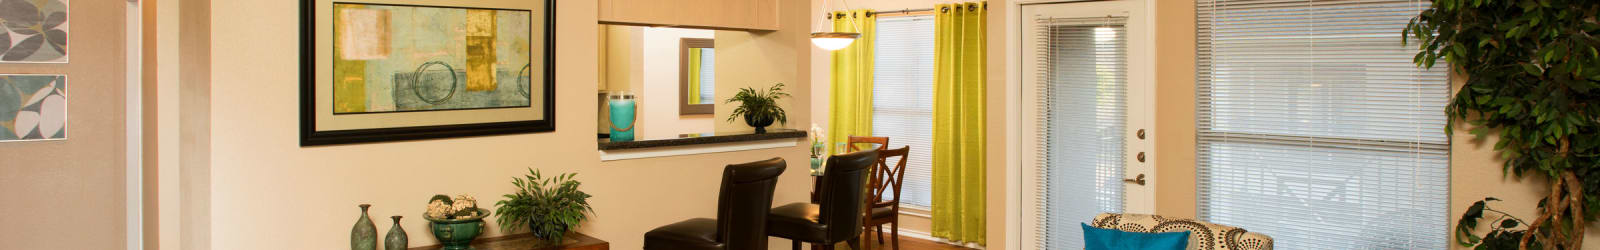 Contact us at El Lago Apartments in McKinney, Texas